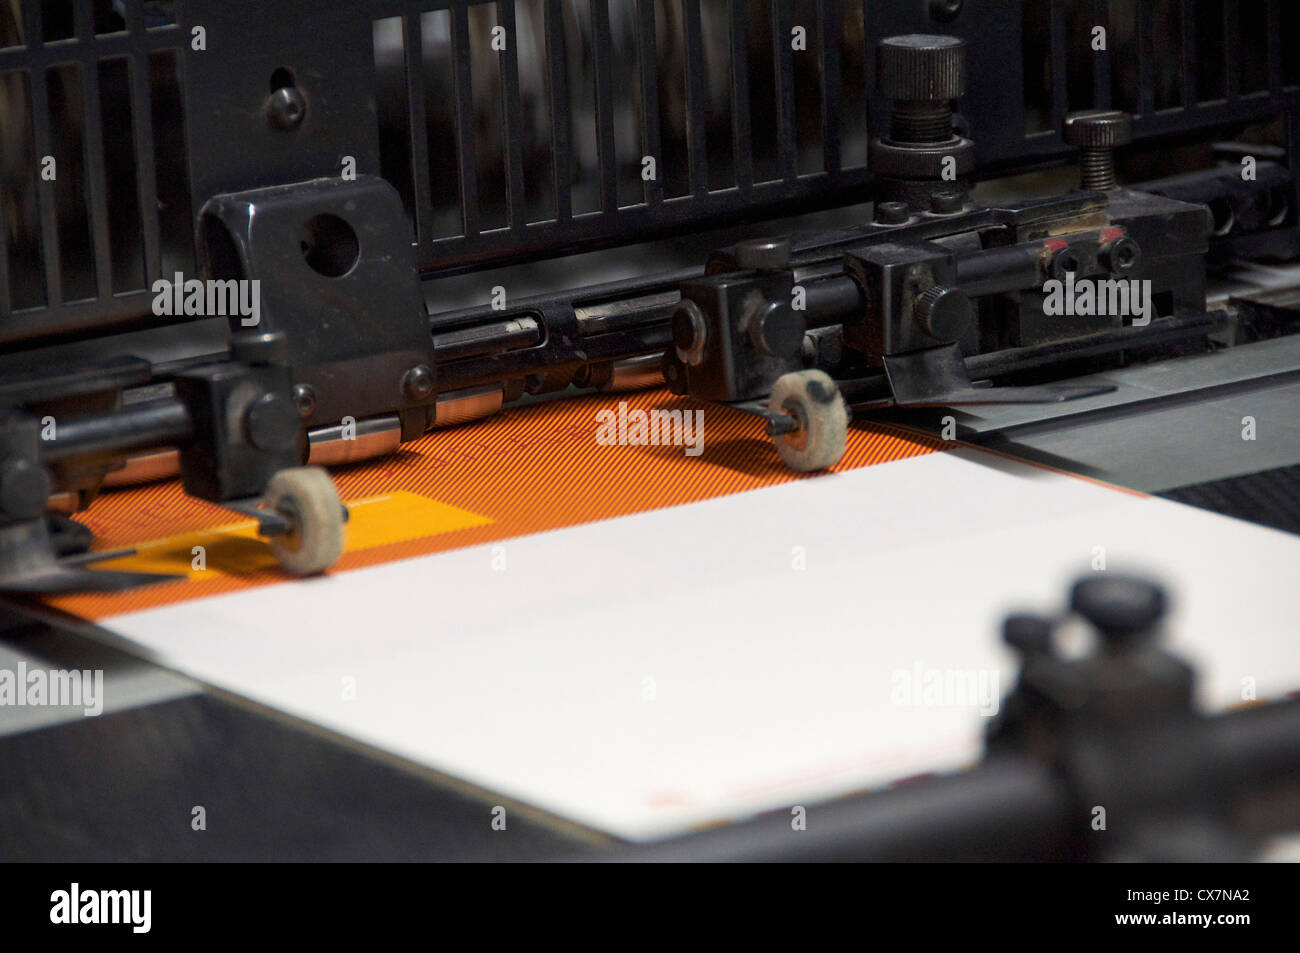 Offset printing machine - Stock Image